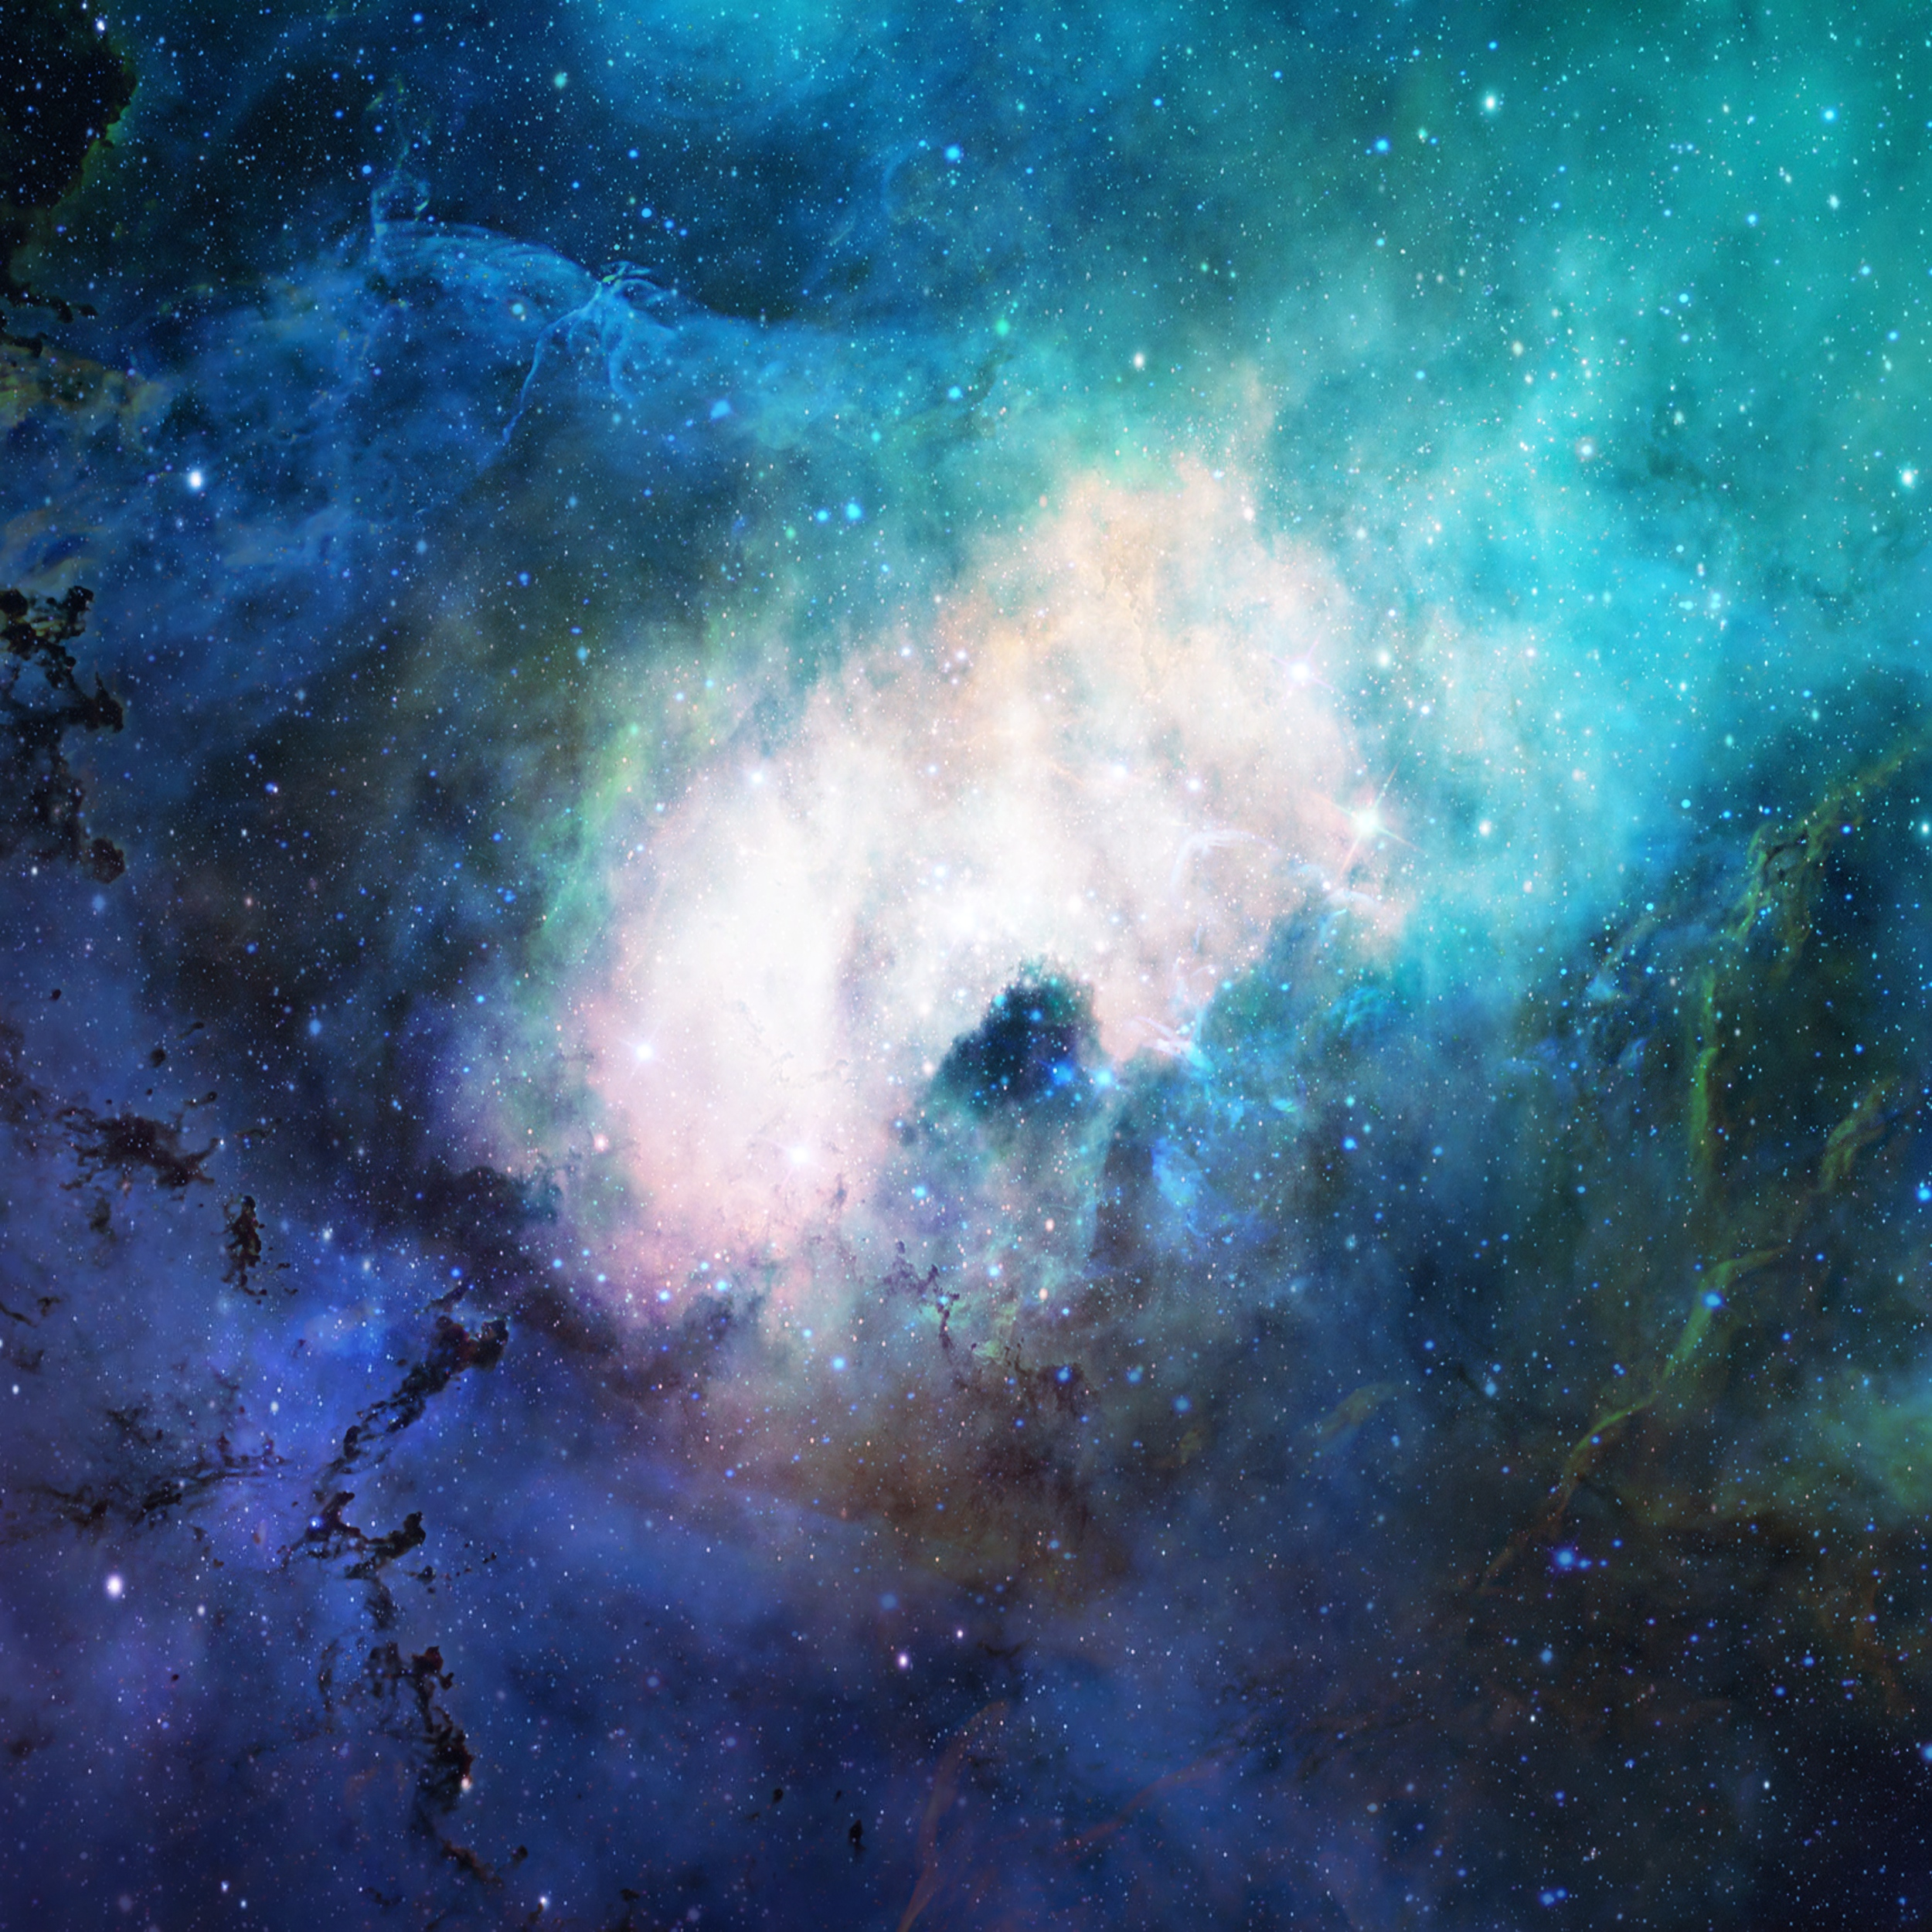 Hd Ipad Retina Wallpapers 6 Awesome Cosmos Inspired Hd Wallpapers